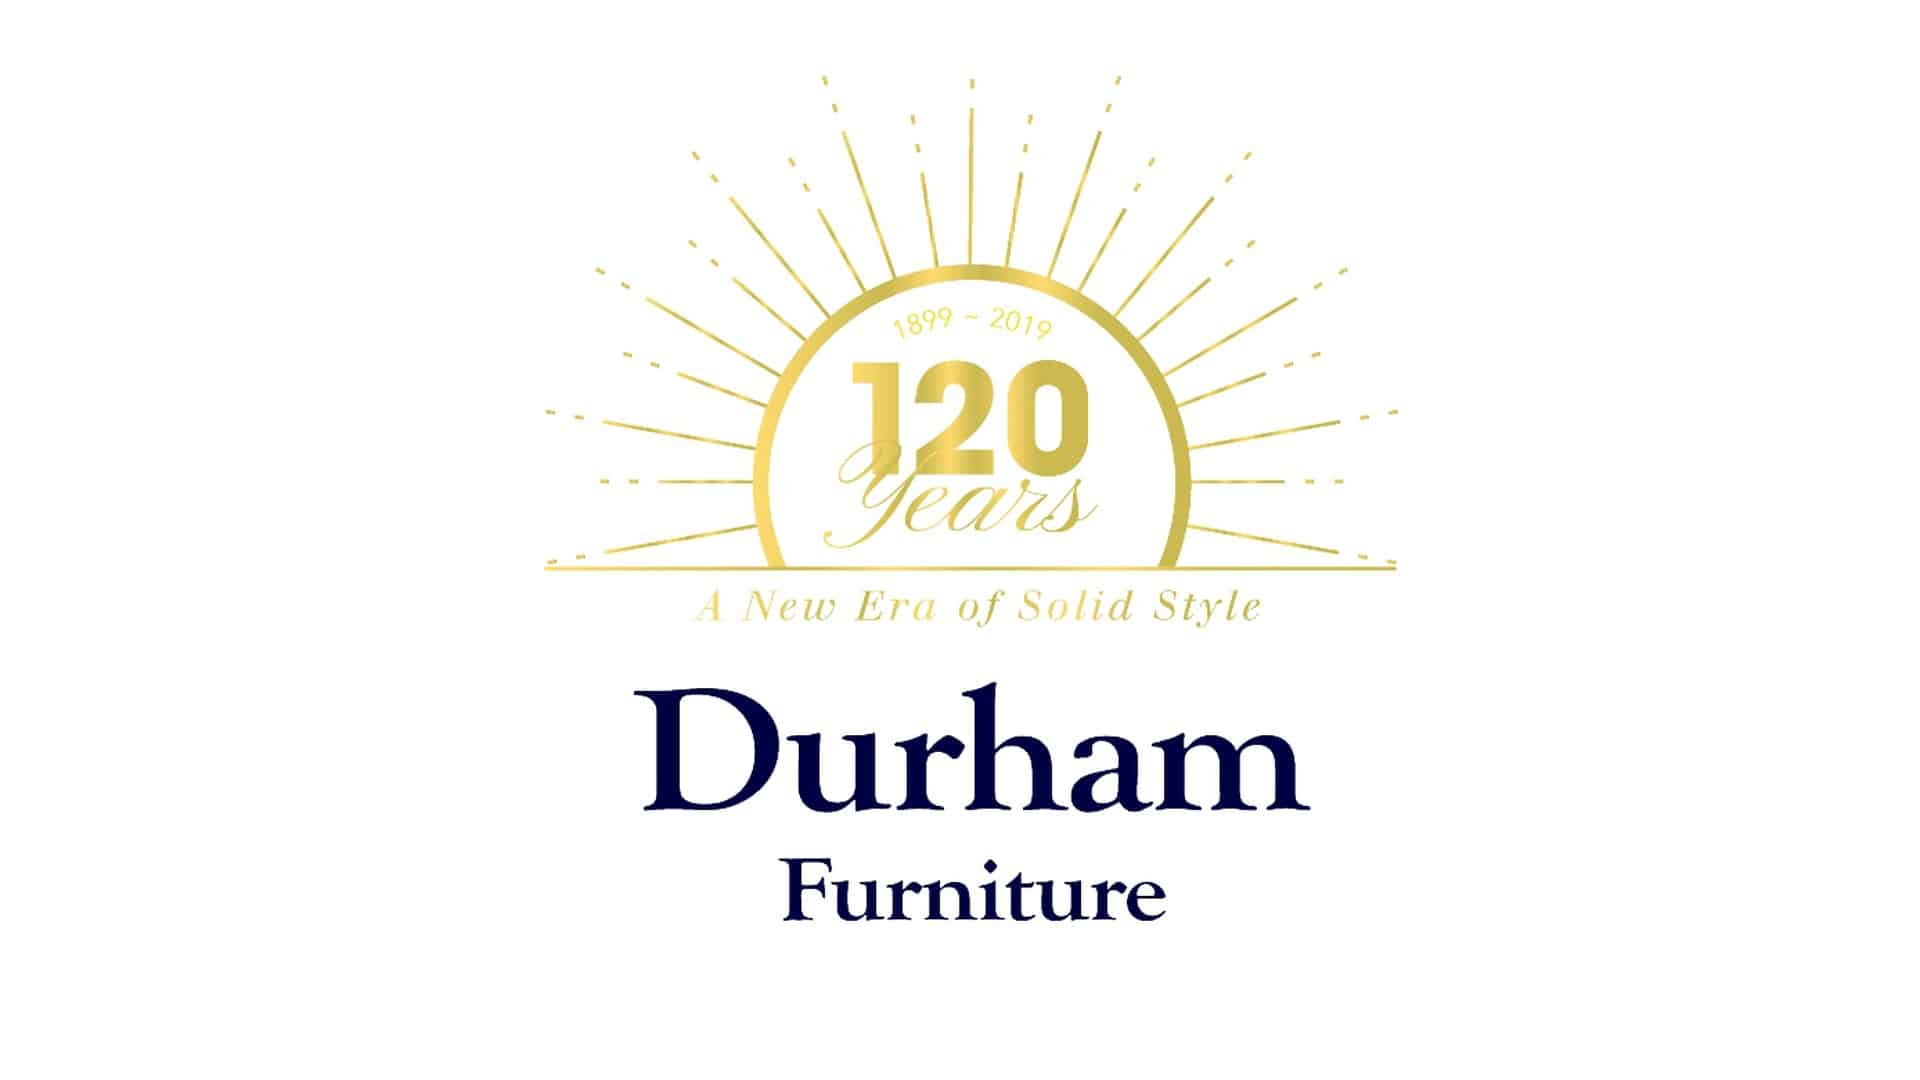 Durham Furniture: 120 Years of Canadian Quality and Style